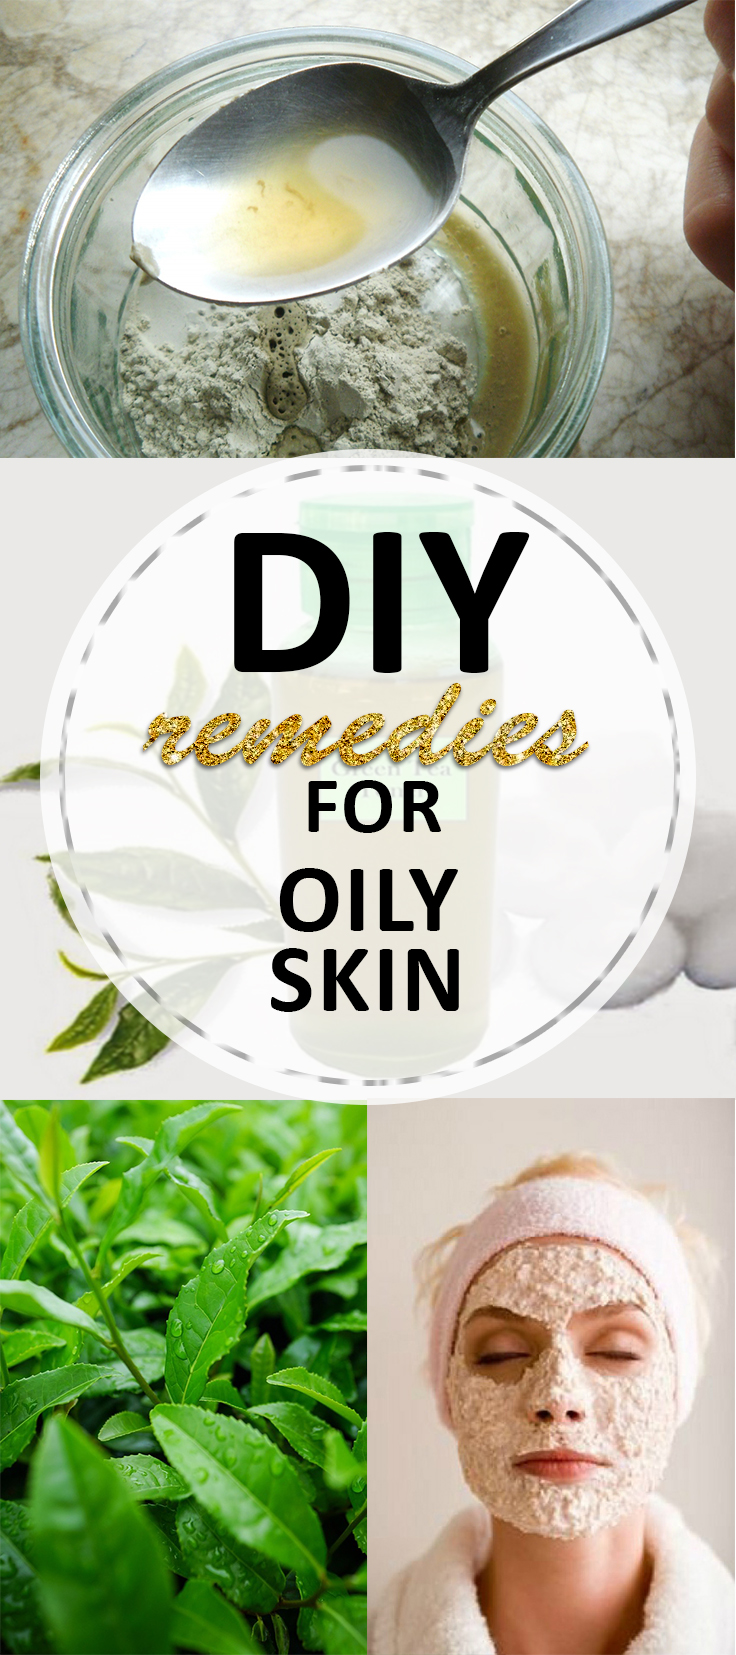 DIY Remedies for Oily Skin